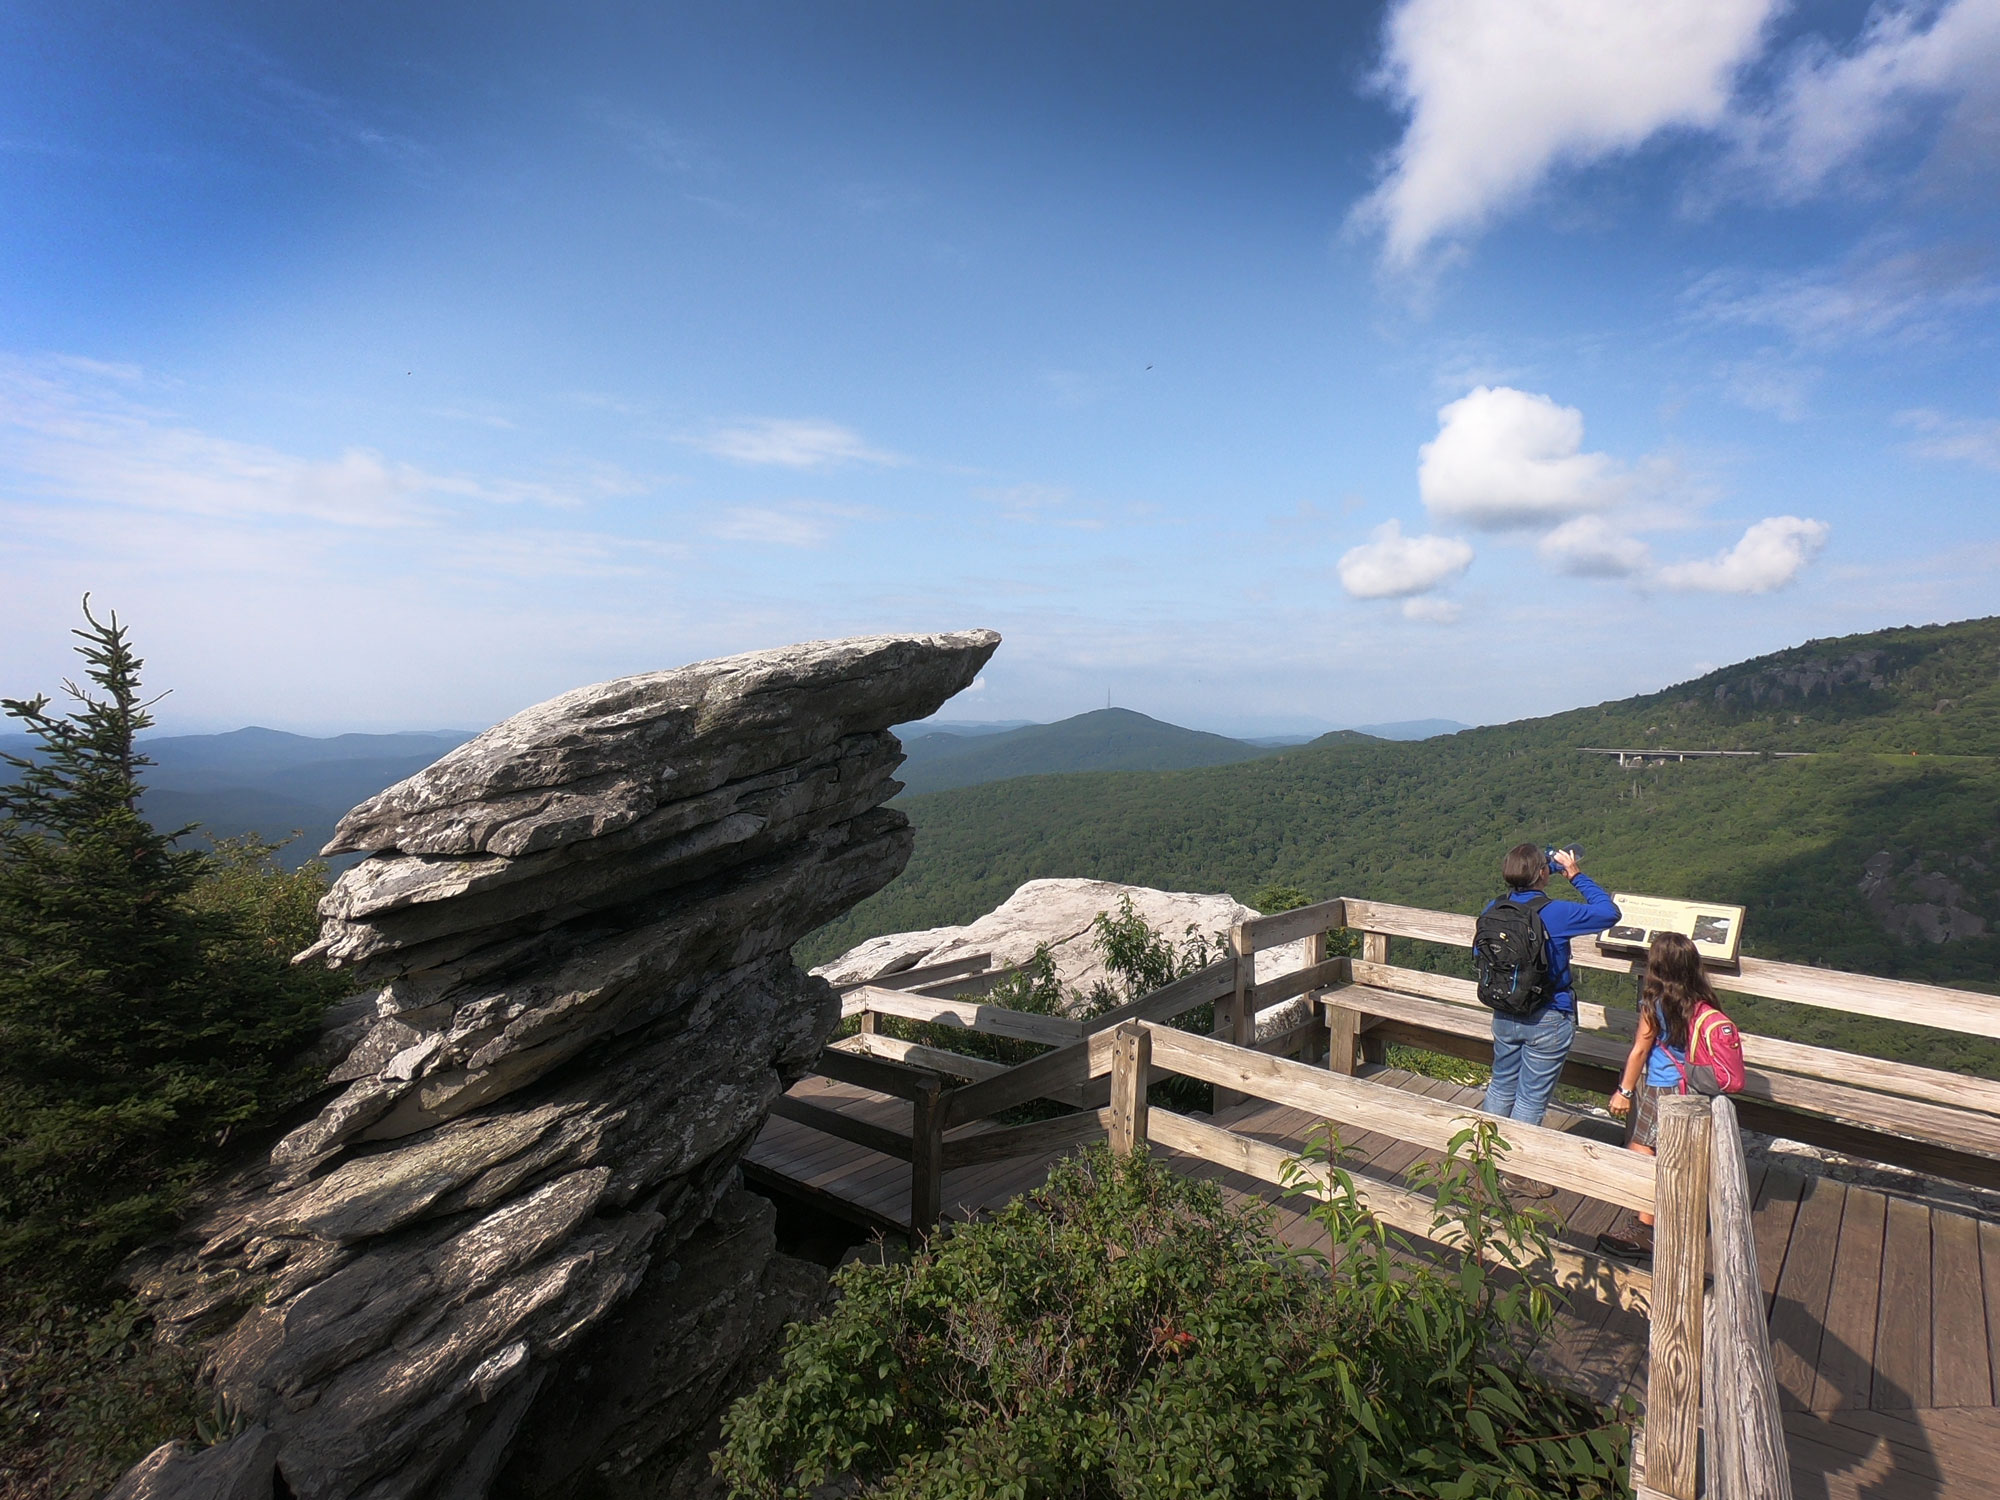 Two people on the overlook deck on Rough Ridge Trail, off Blue Ridge Parkway, North Carolina